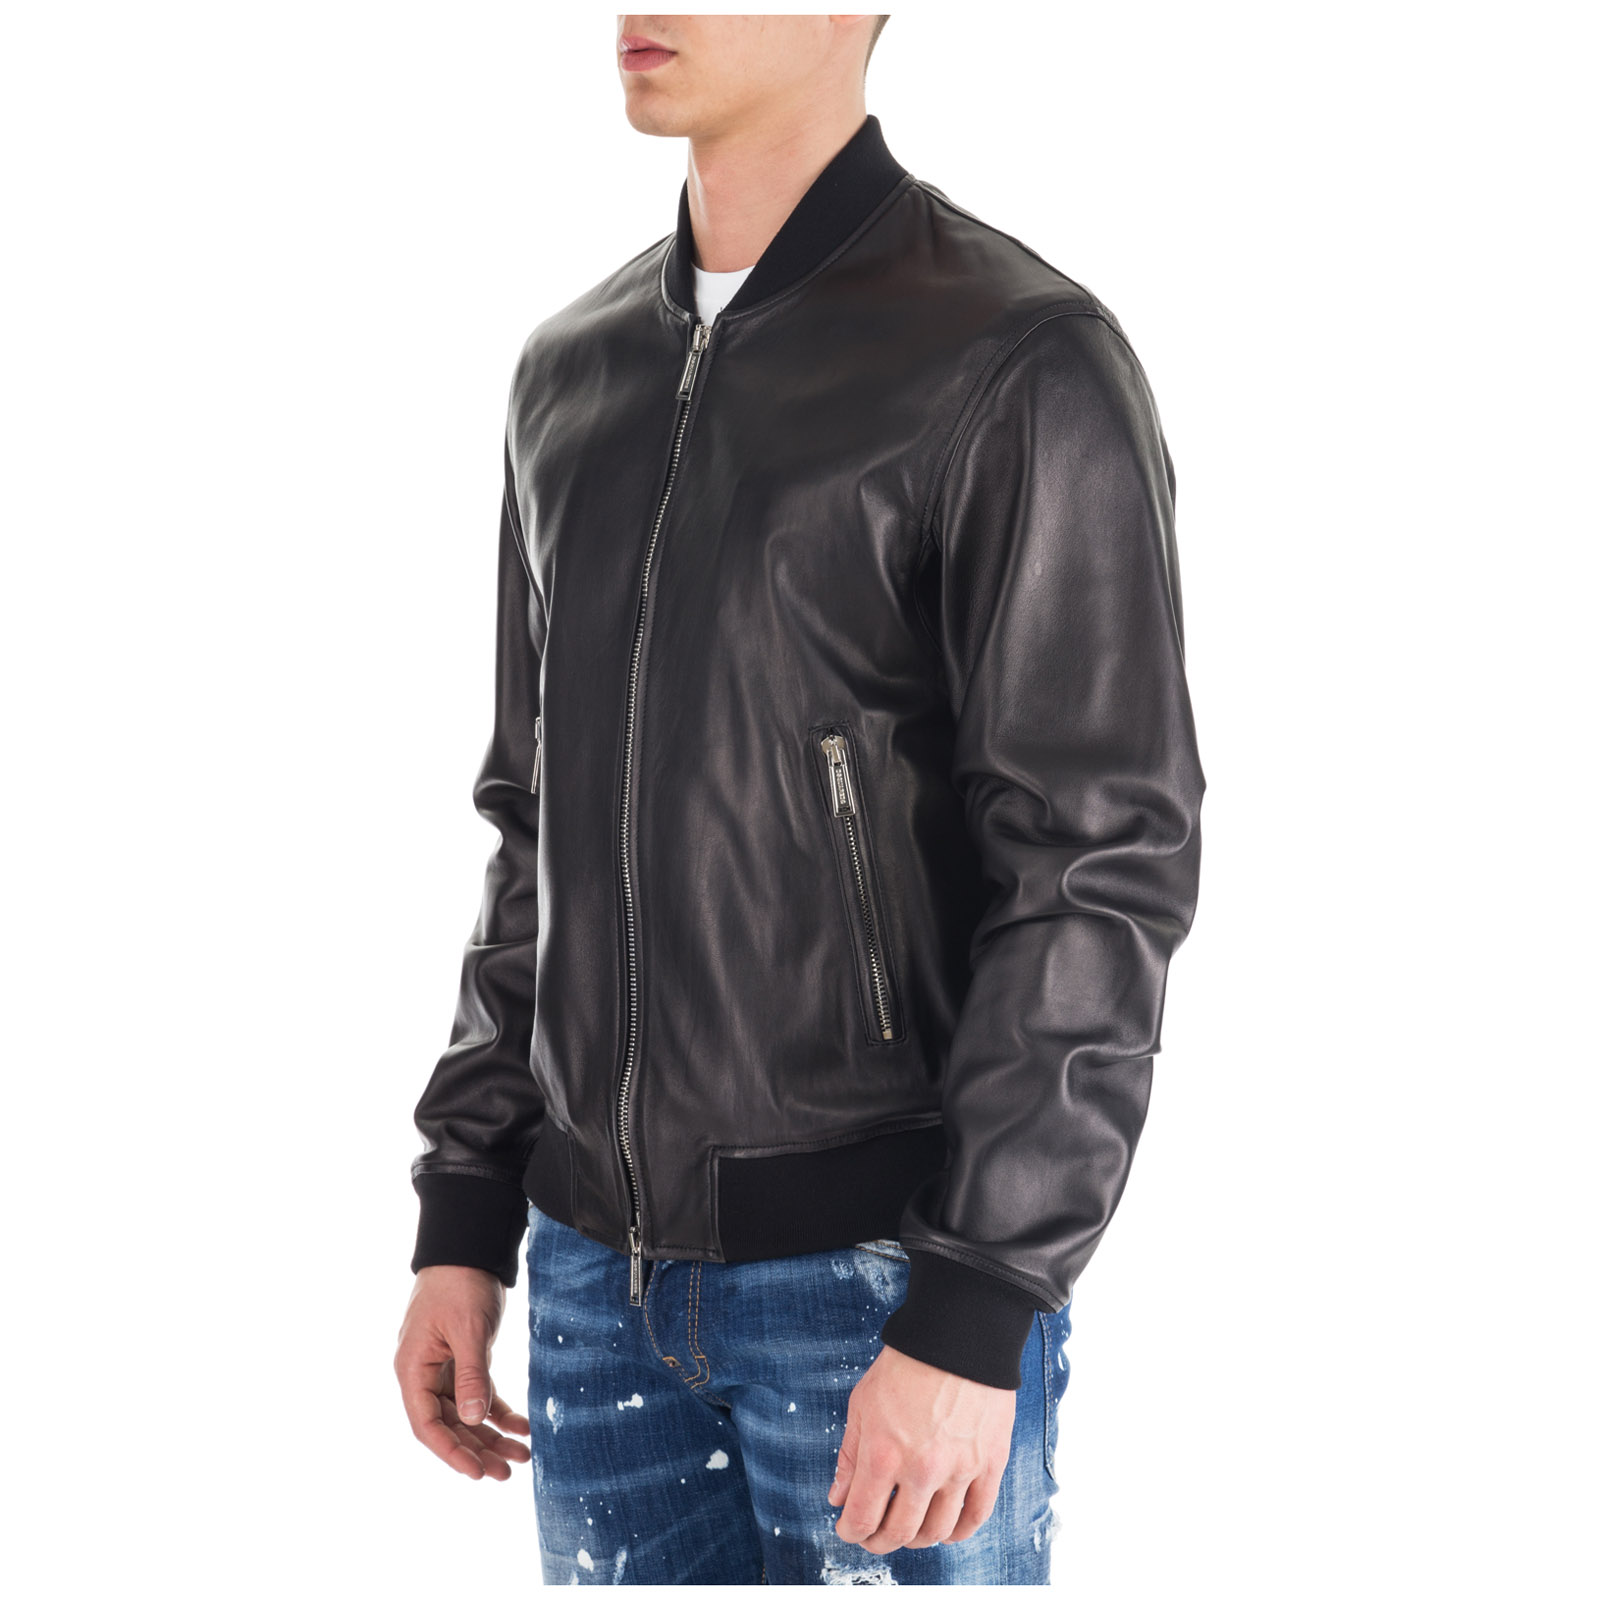 a75dc0db7 Men's outerwear jacket blouson in pelle aviator bomber